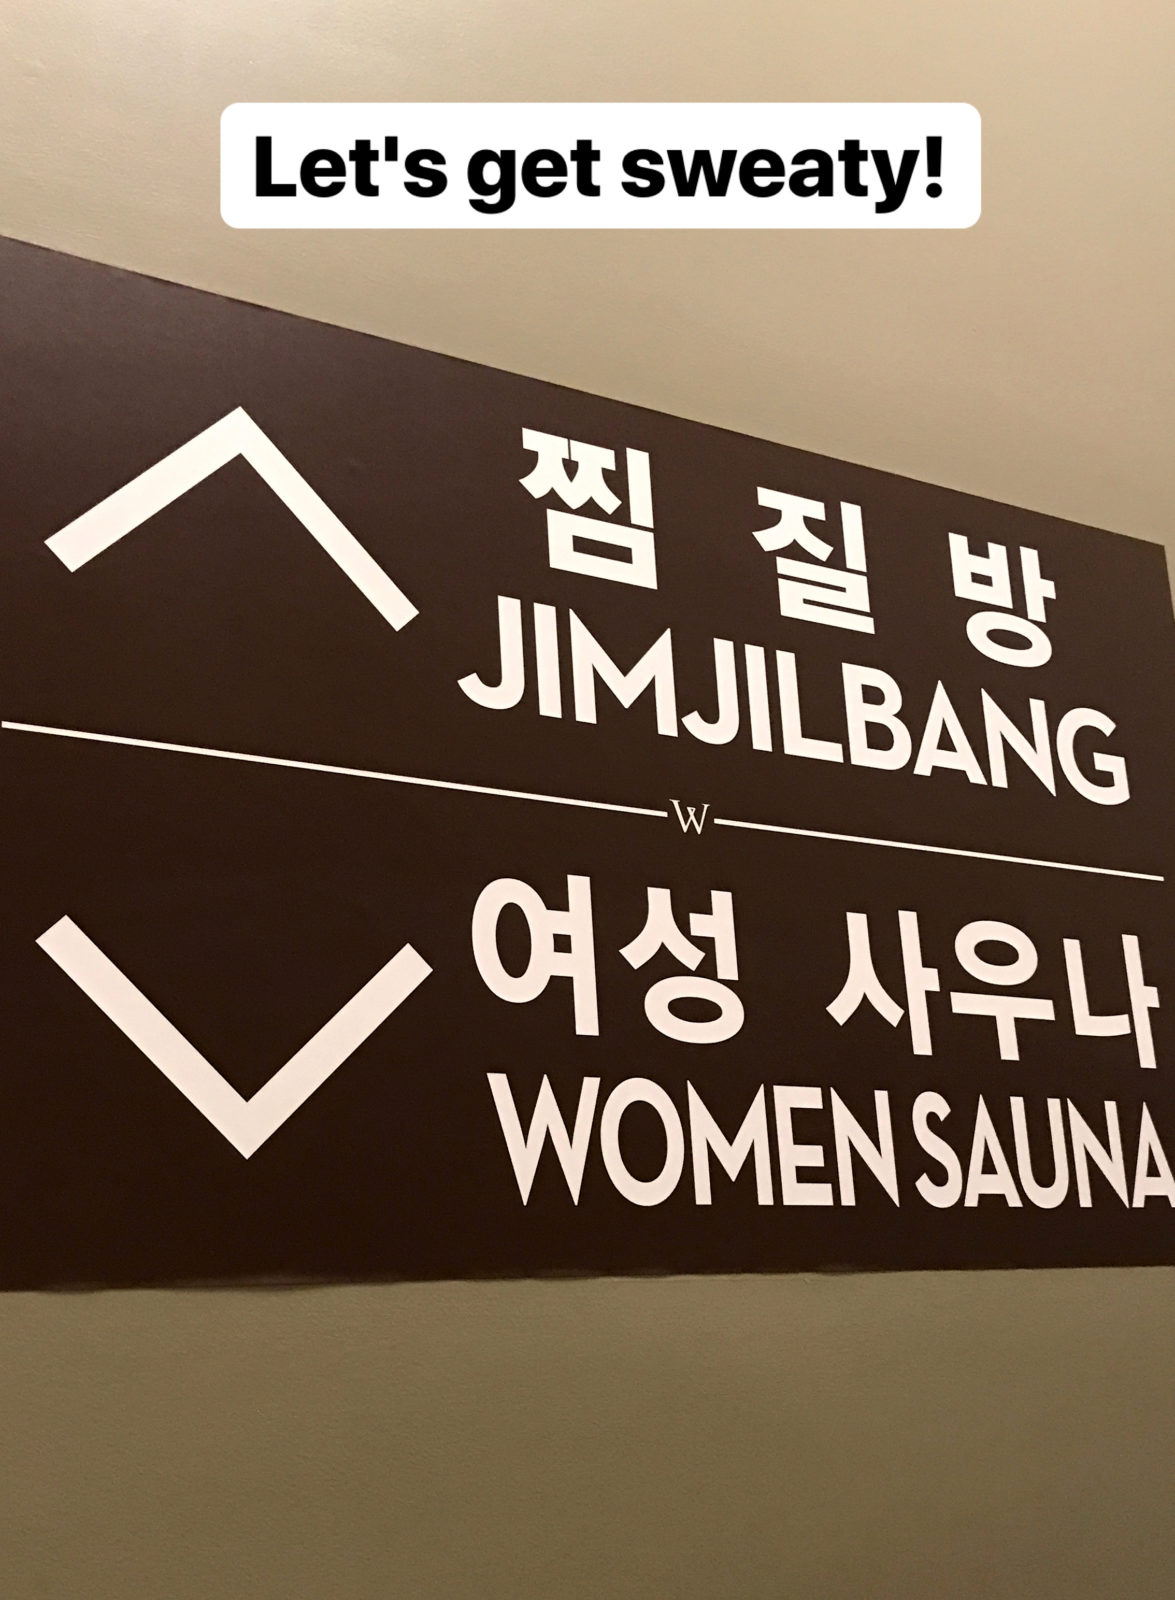 Korean Spa Jimjilbang Sauna - What to expect at a Korean spa in the US by popular Los Angeles travel blogger My Beauty Bunny